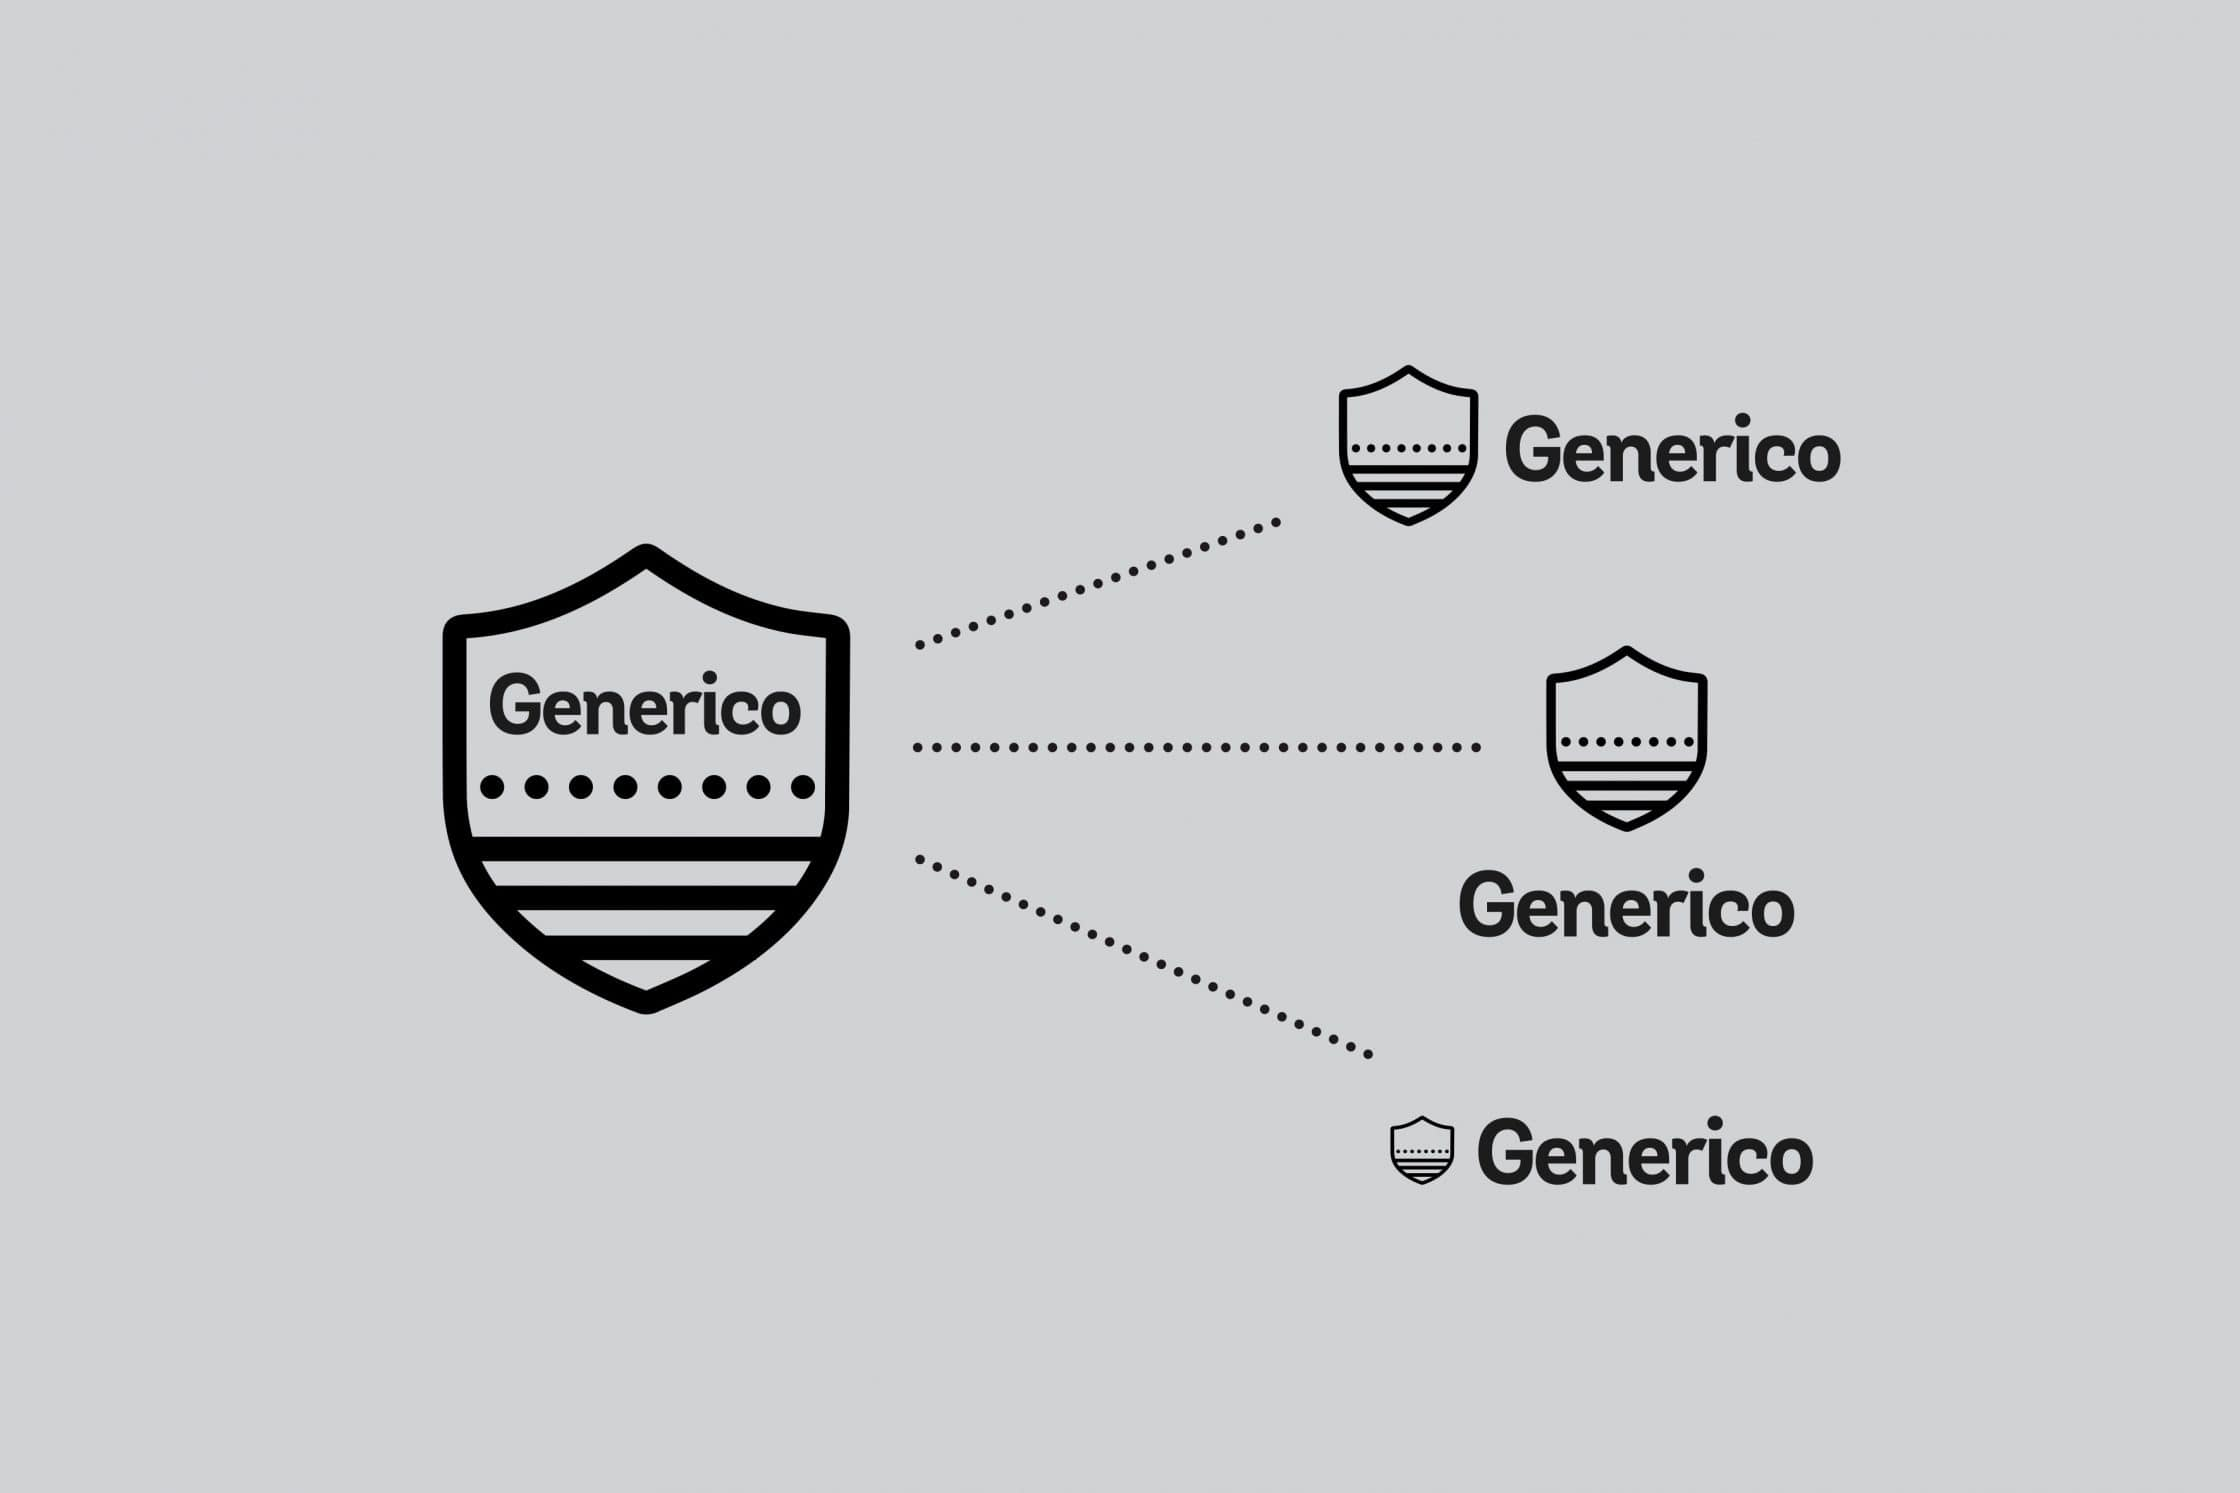 Testing the Generico logo in different arrangements.